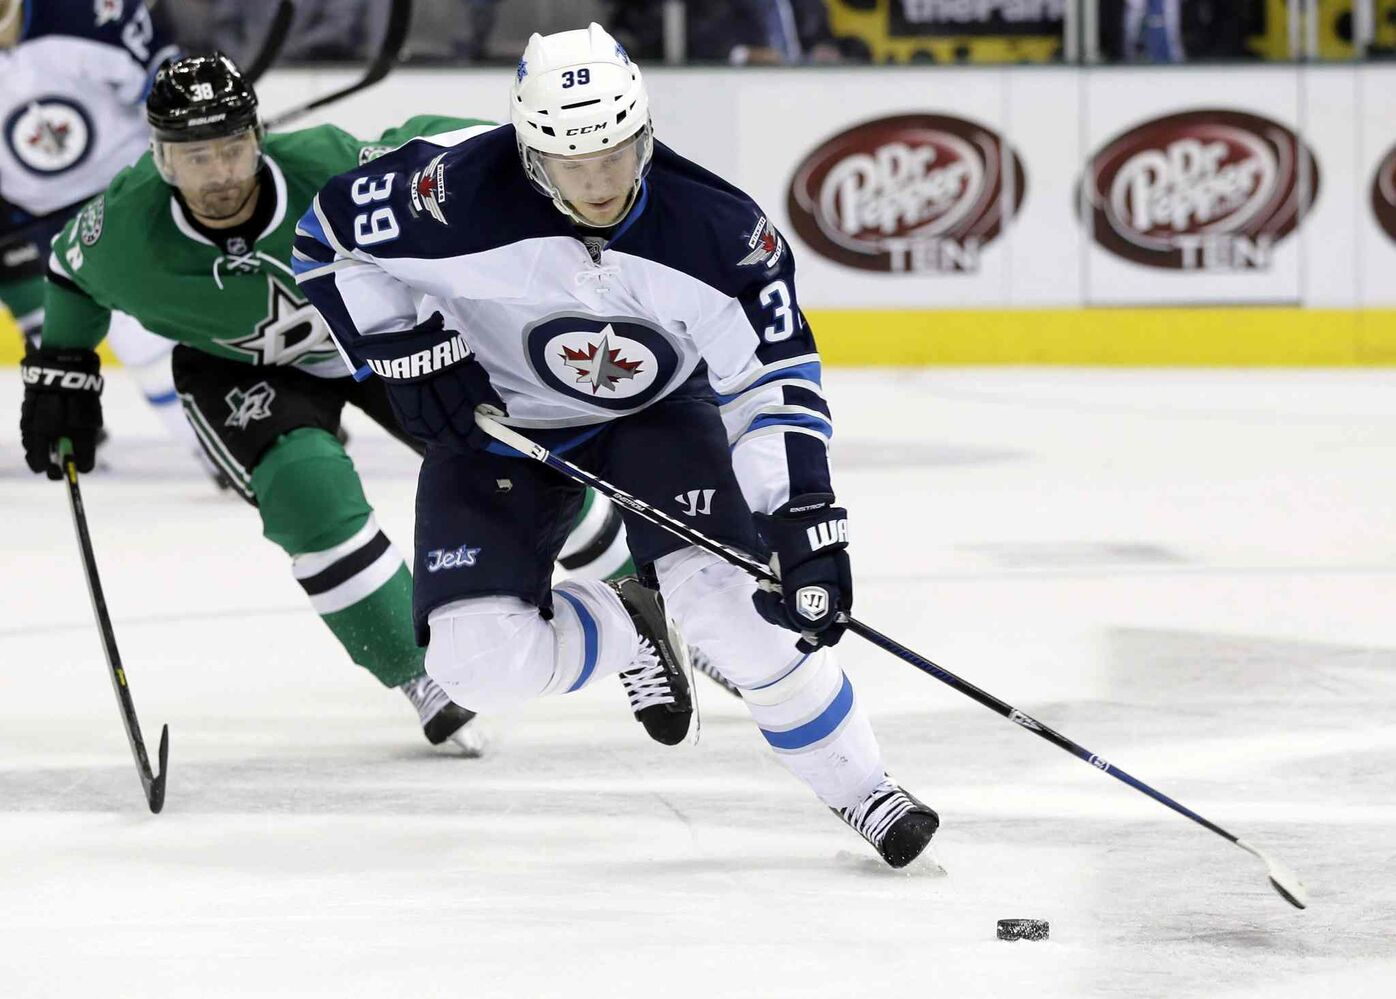 Winnipeg Jets defenceman Tobias Enstrom controls the puck as Dallas Stars forward Vernon Fiddler (gives chase in the first period. (Tony Gutierrez / The Associated Press)